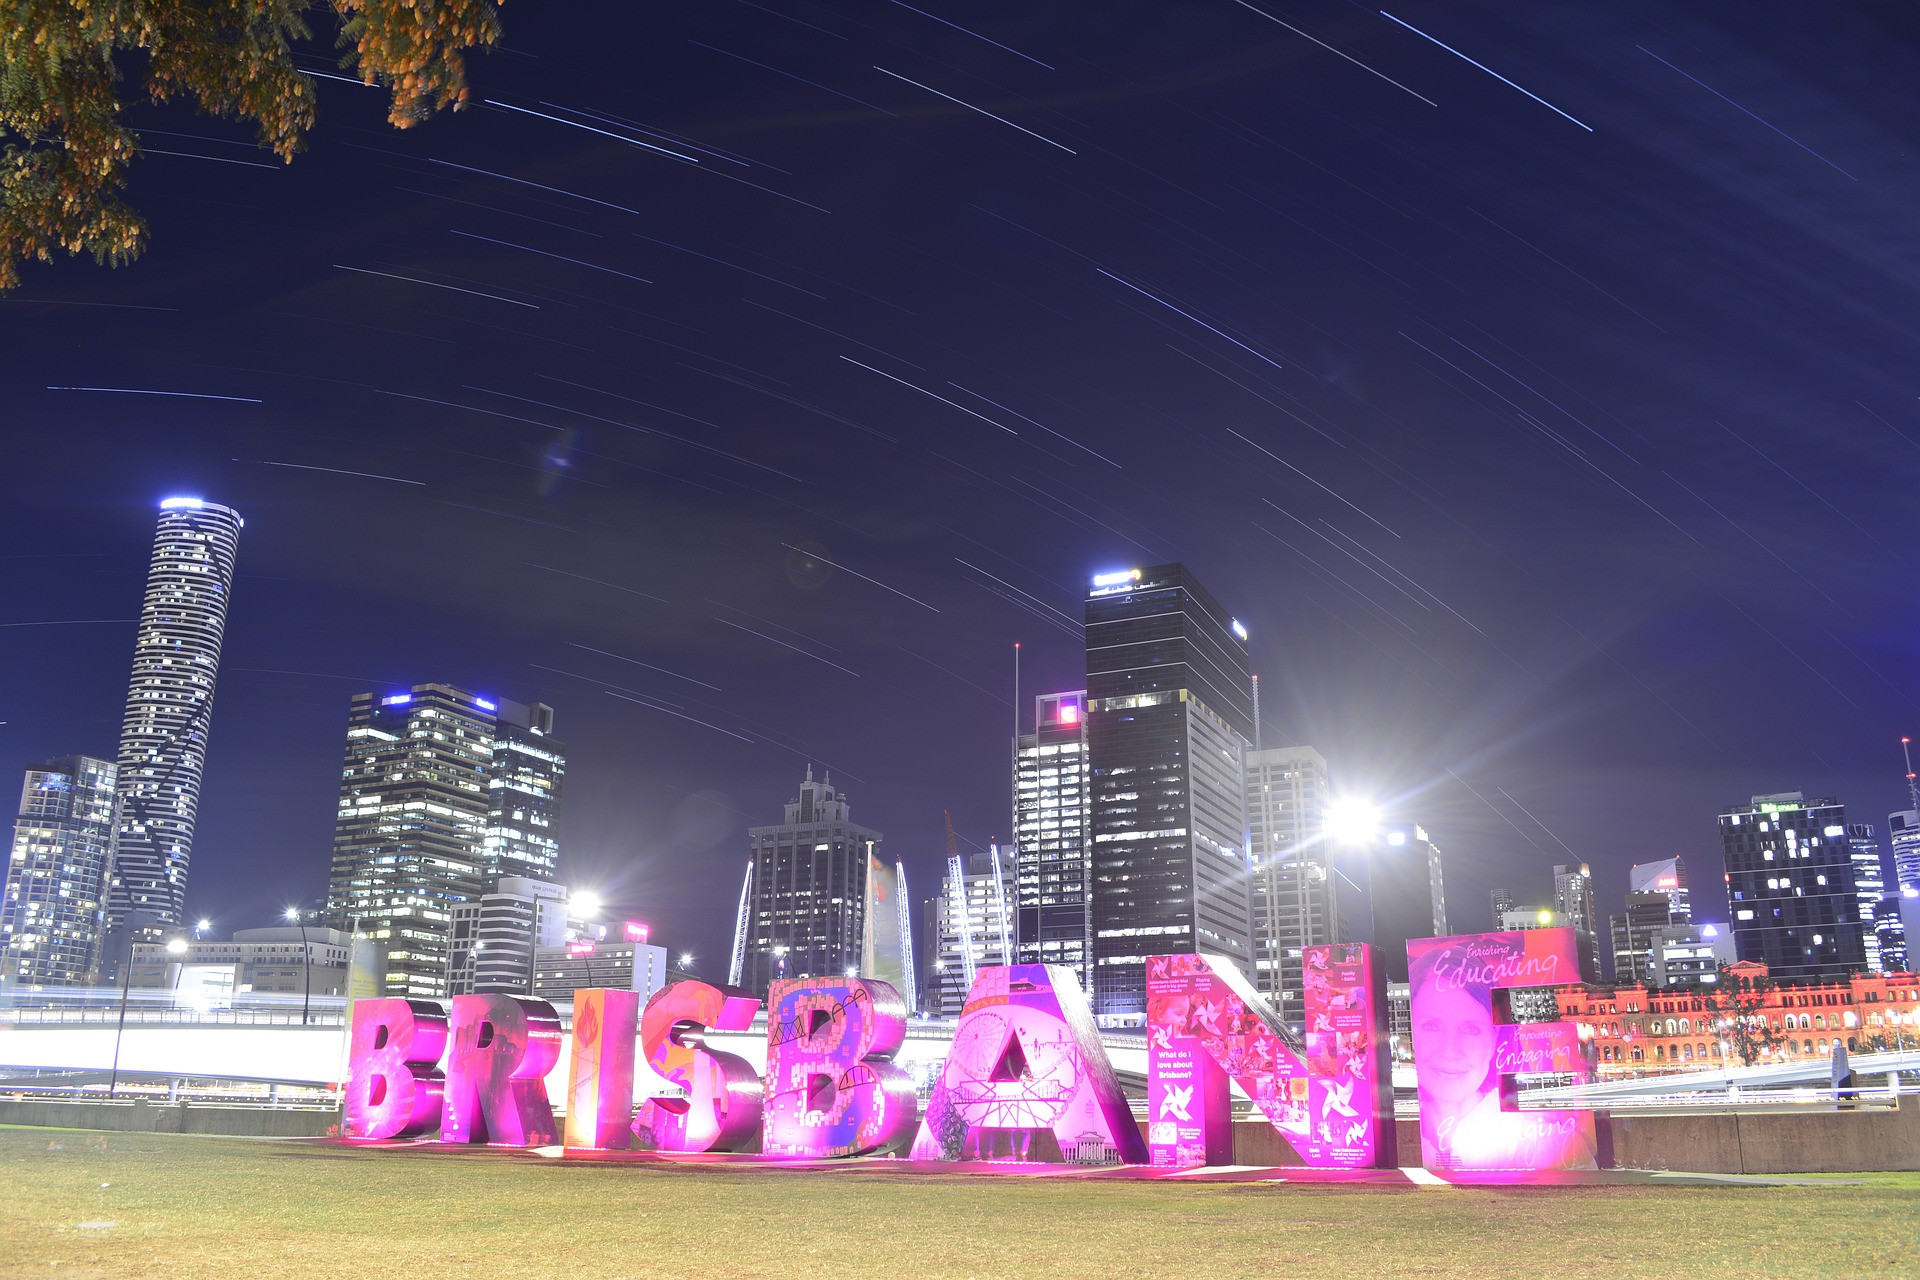 Suburbs to invest in outside of inner city Brisbane